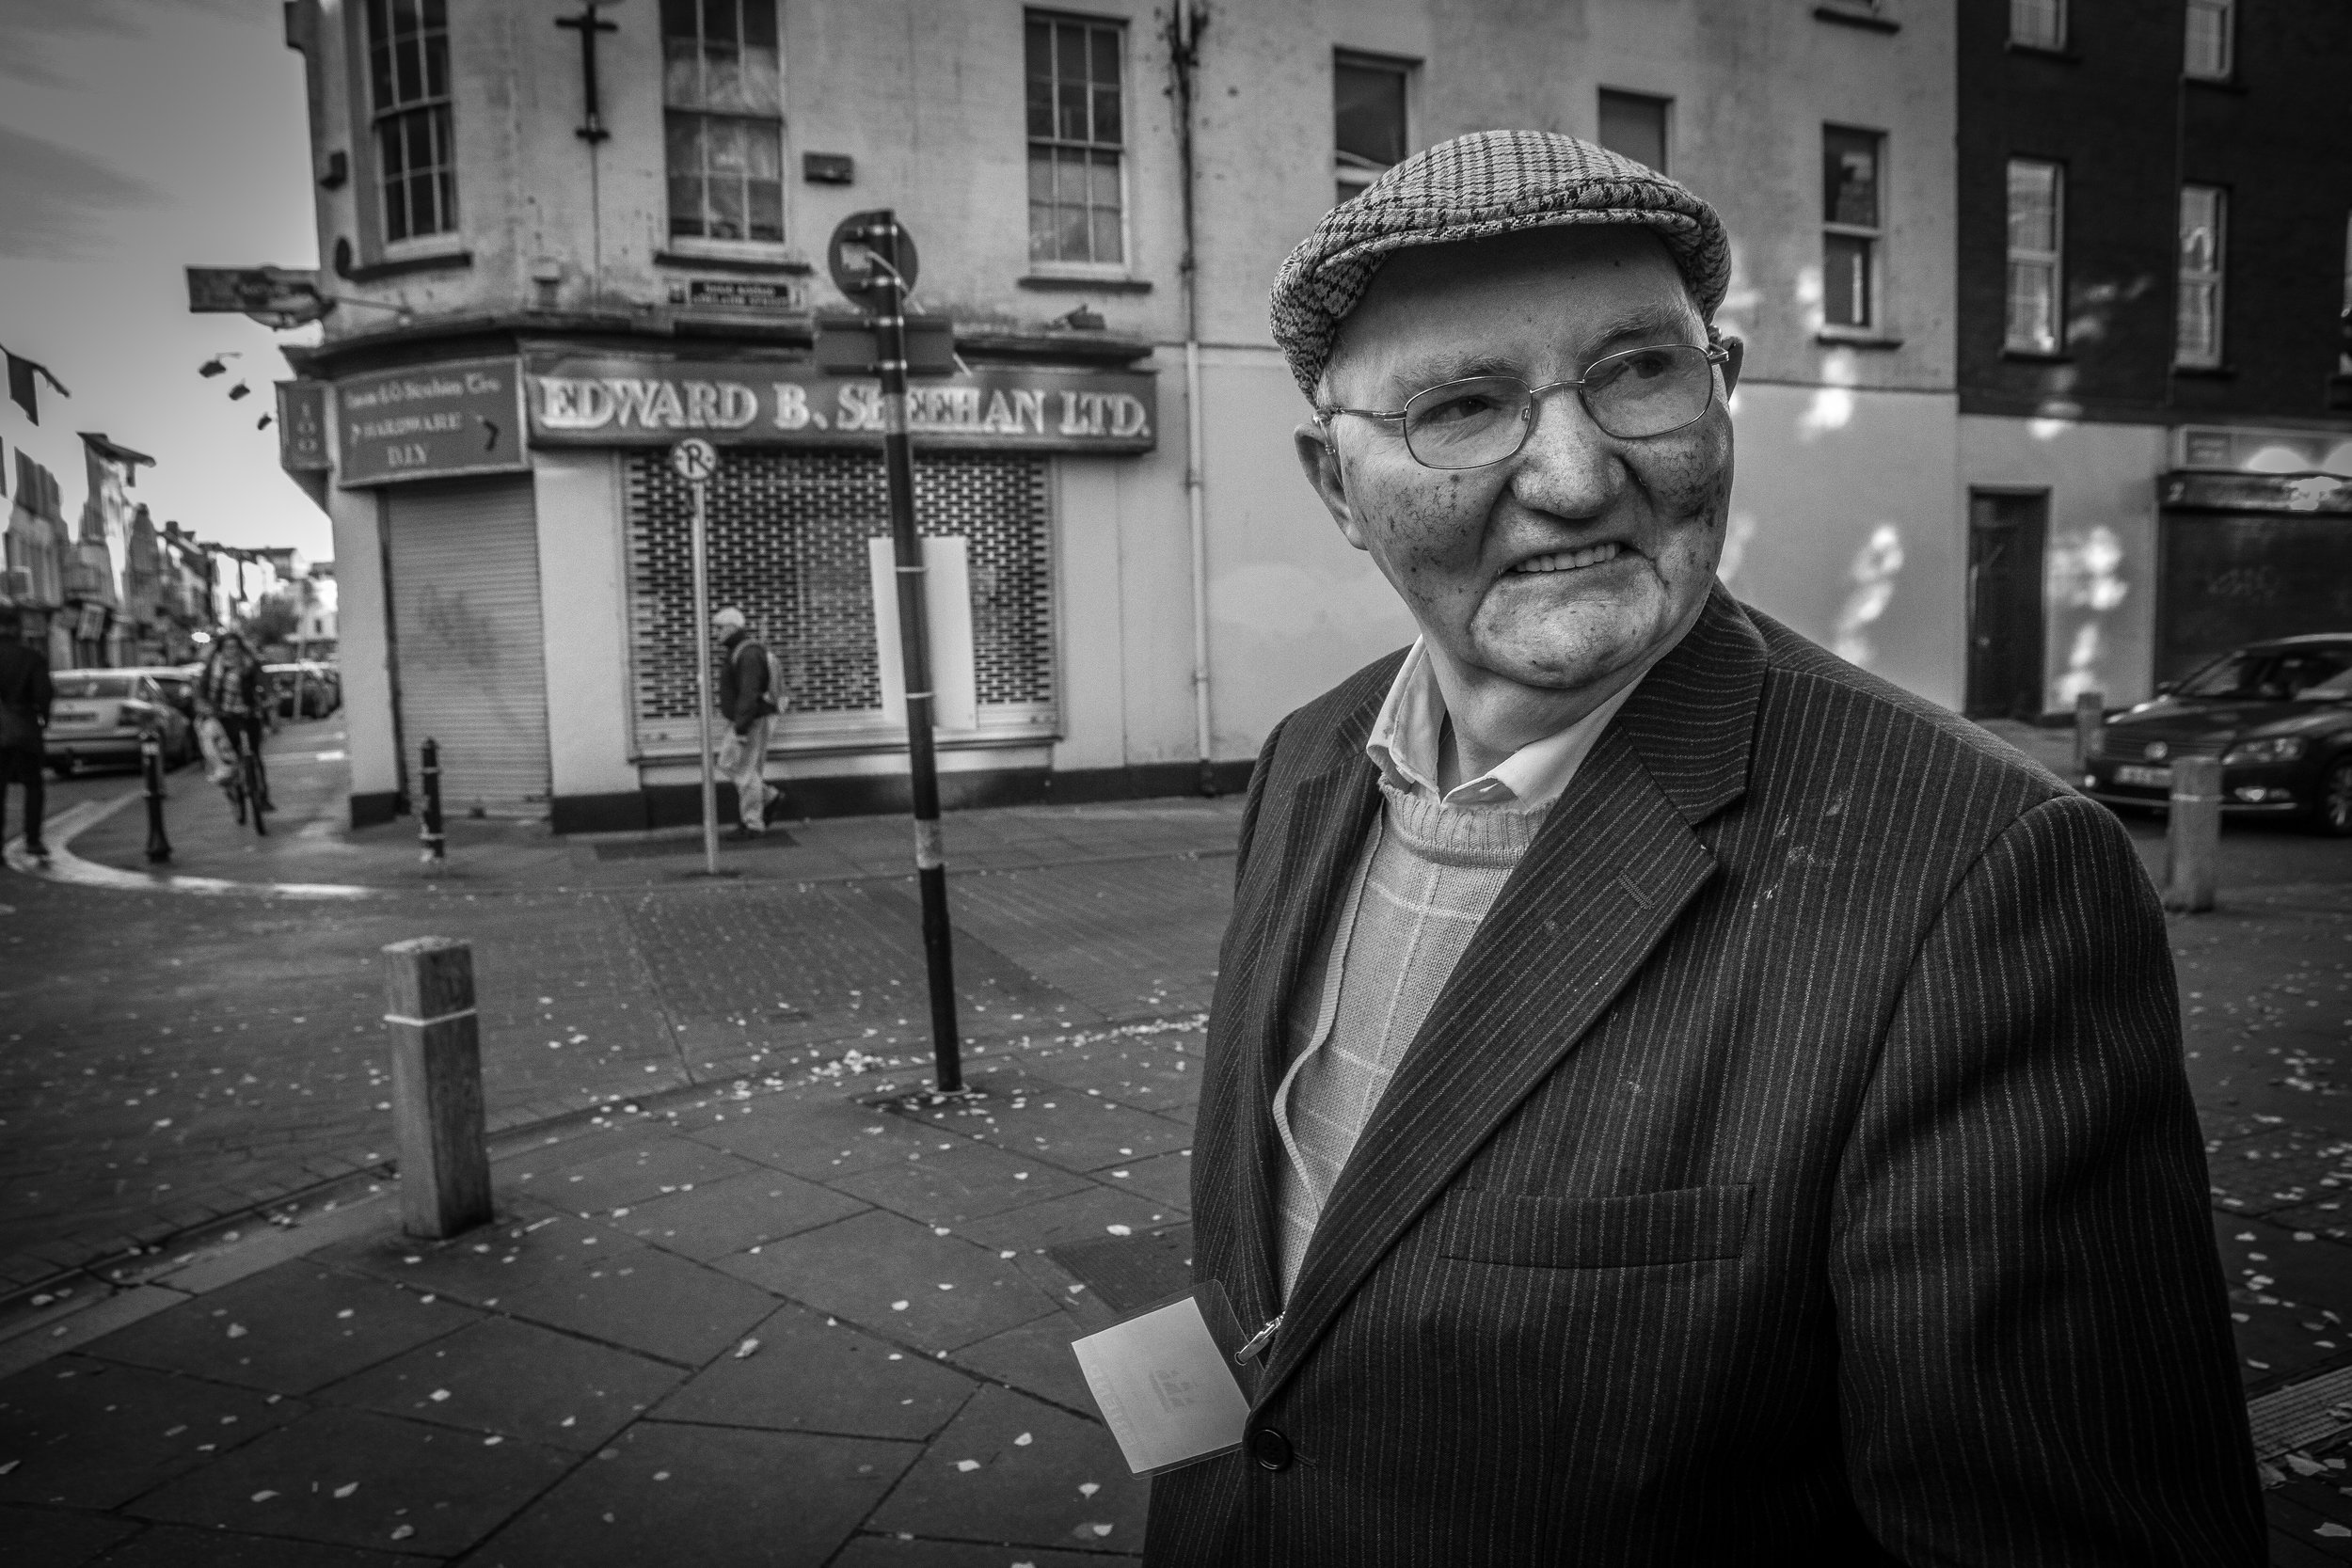 I've seen Liam Kirby a lot recently.  I saw him at nearly every screening I was at at this years Cork Film festival.  He told me he has been coming to the festival for 53 years, he travels up from waterford especially.  I would sometimes notice him shuffle out midway through a screening and I found myself agreeing with his taste most of the time!  He became a kind of canary in the mine for me, when Liam moved out the film would likely turn out to be a dud!  (Although he did sit through some stuff that even I thought was pretty full on...'   I Hope I see him at next years festival!